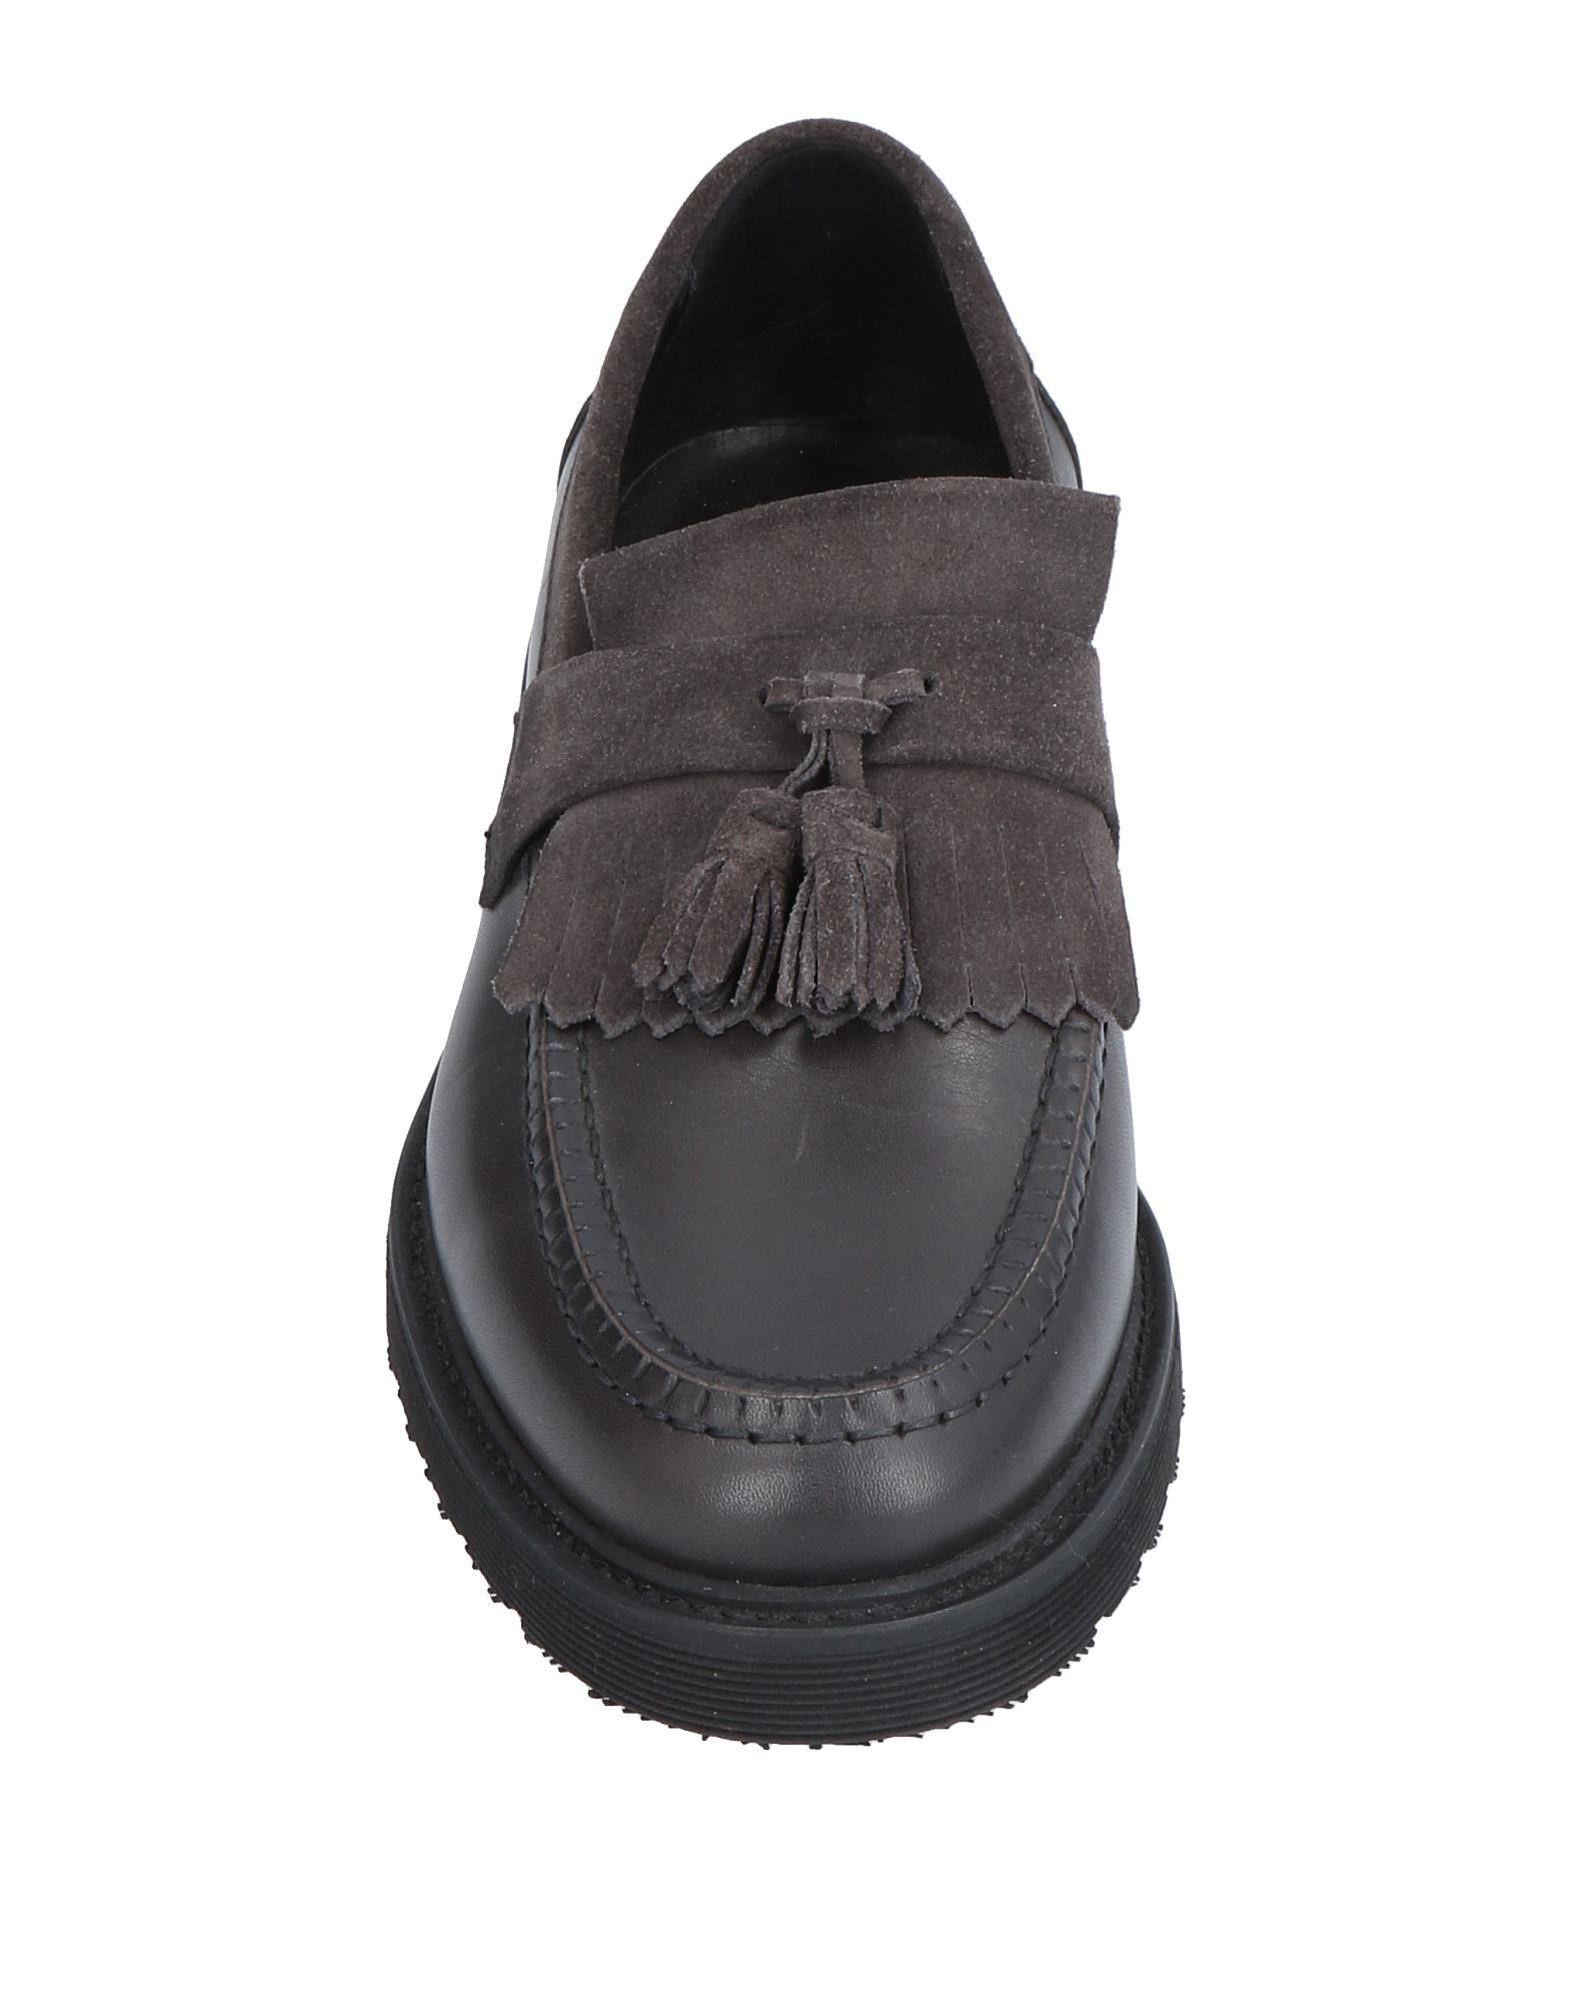 Emporio Armani Loafers - Men Emporio Armani Loafers - online on  Canada - Loafers 11504219MO 055b47